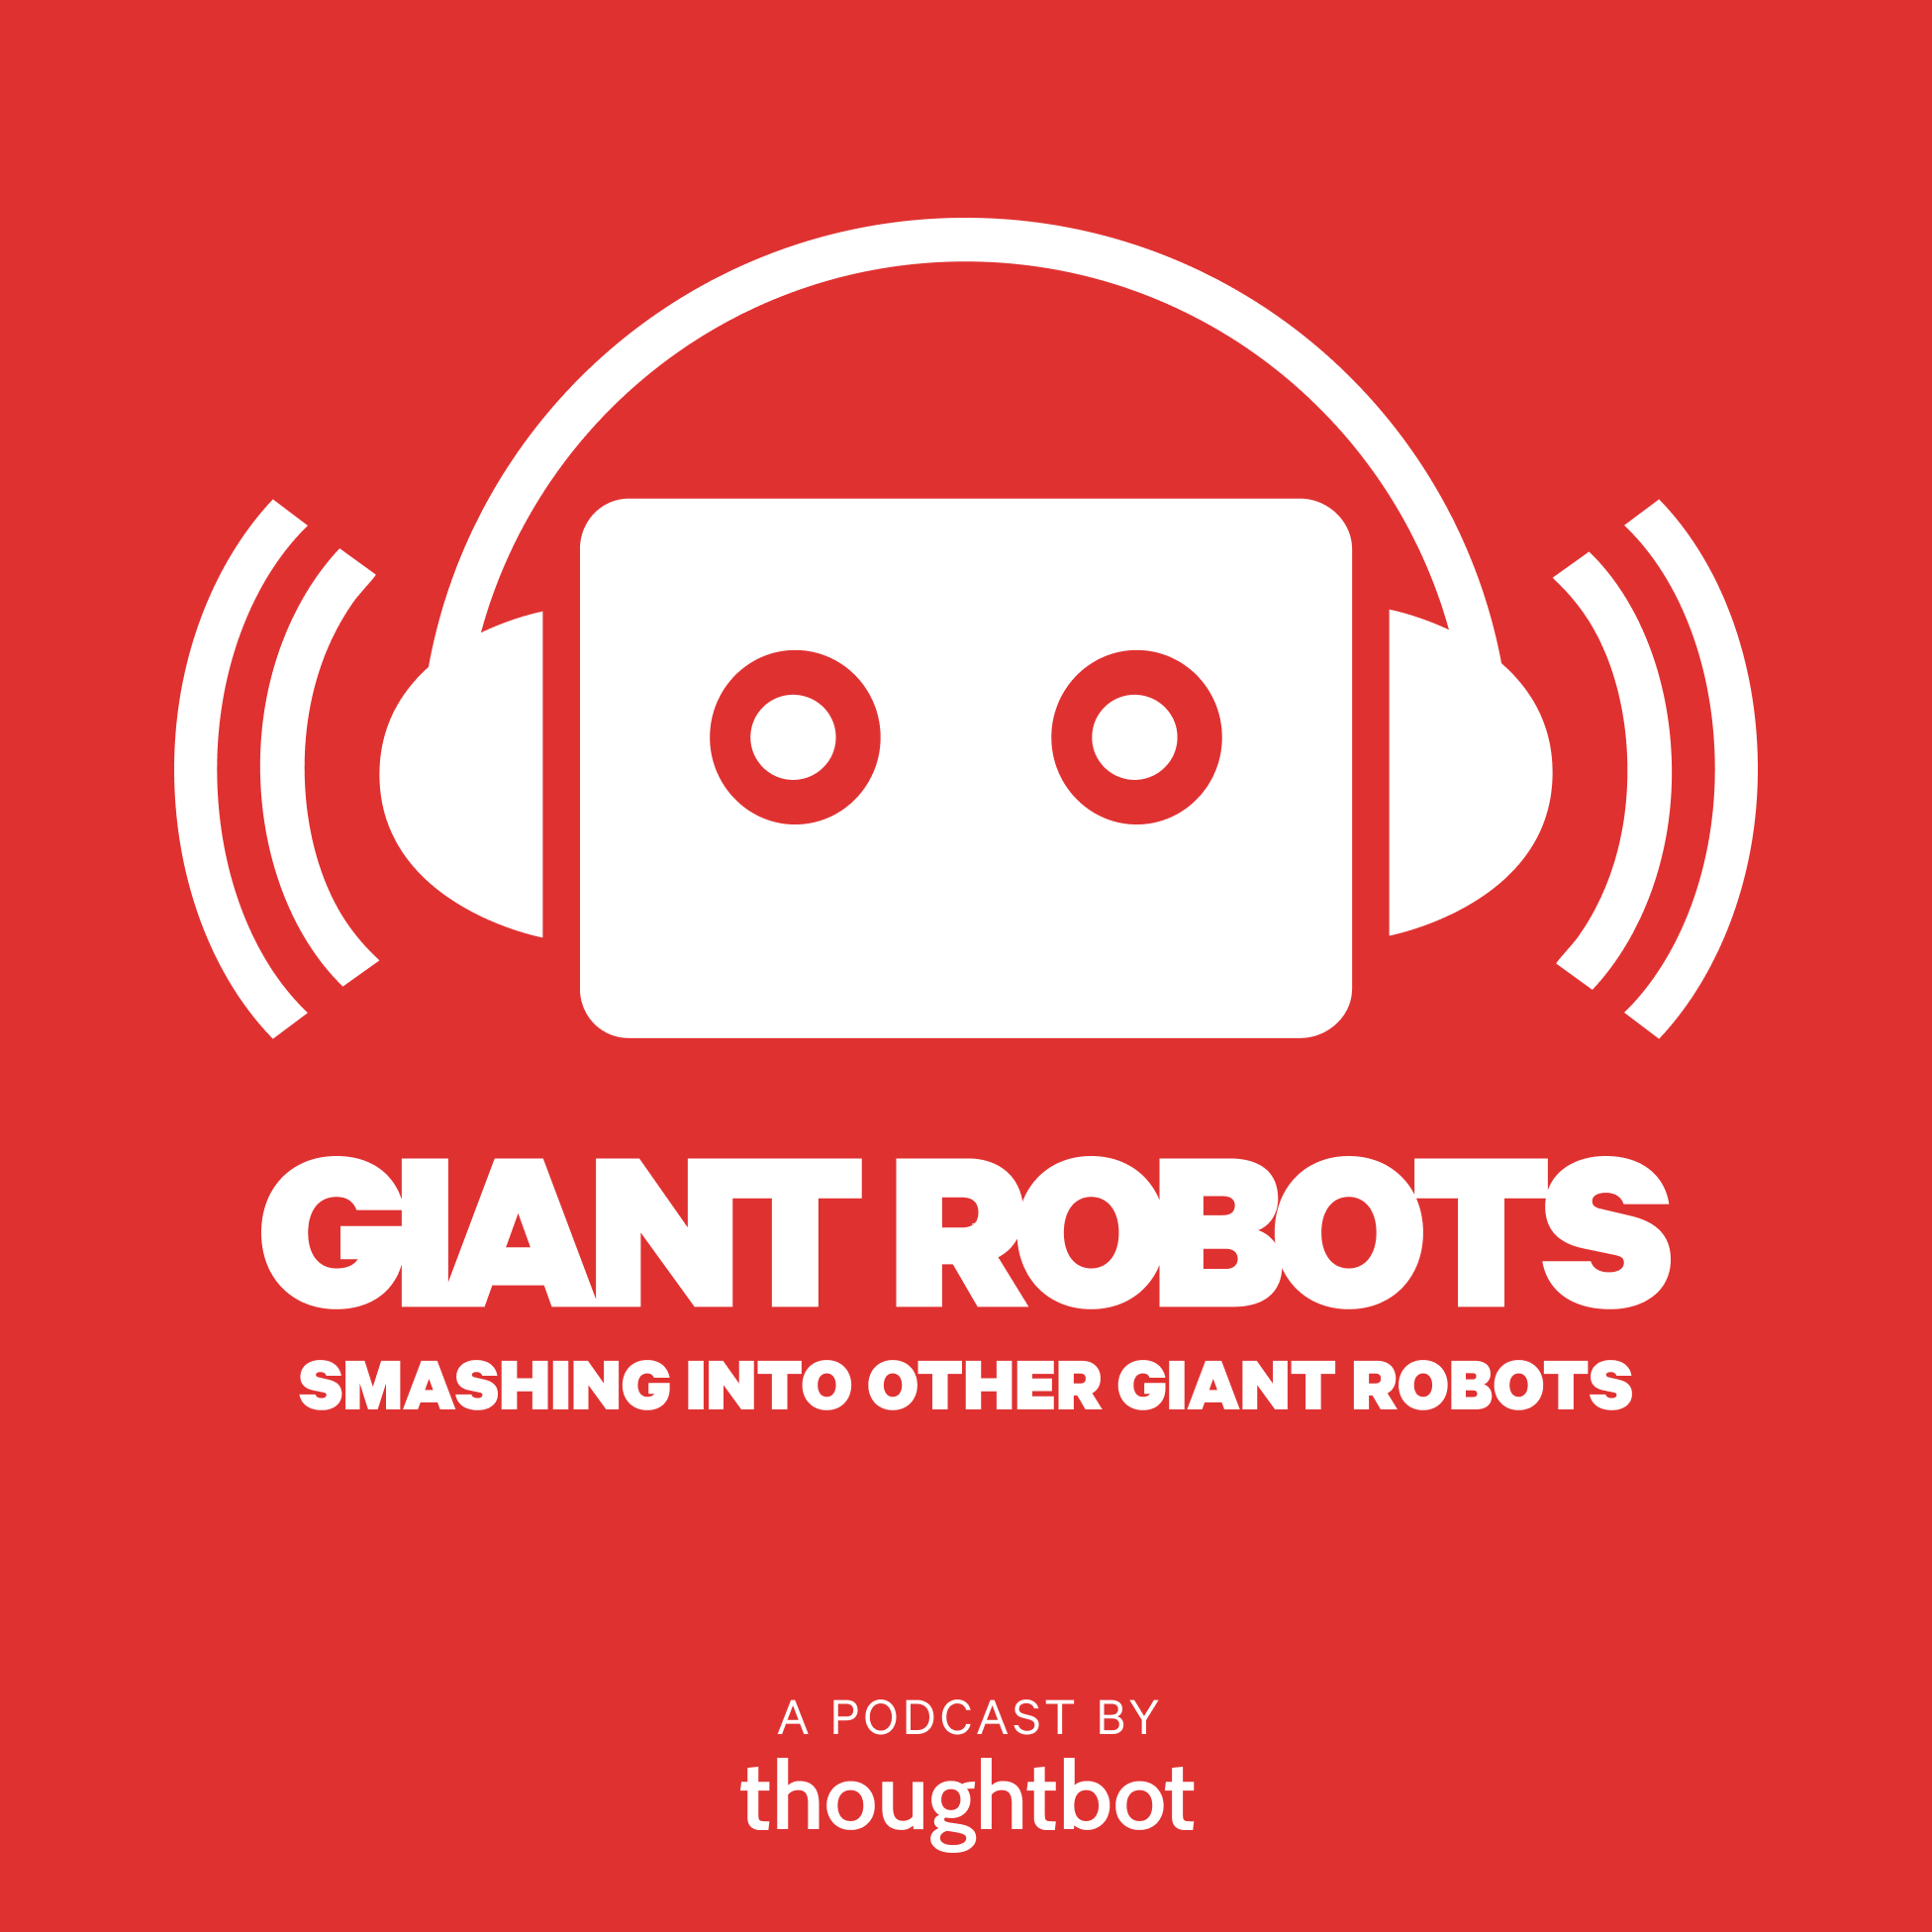 Giant Robots cover image